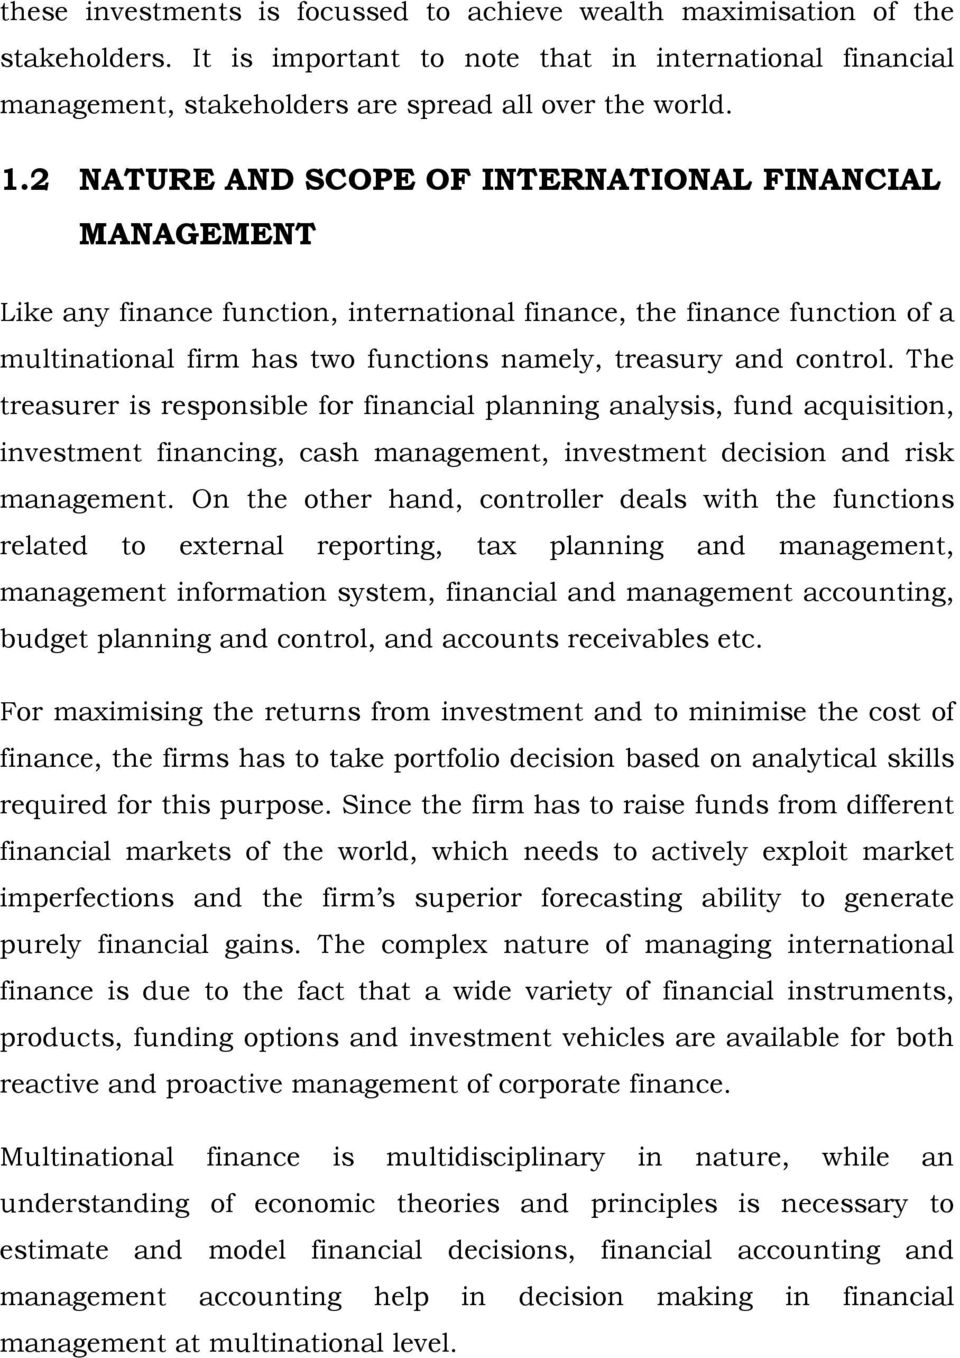 Multinational Financial Management An Overview Pdf Free Download